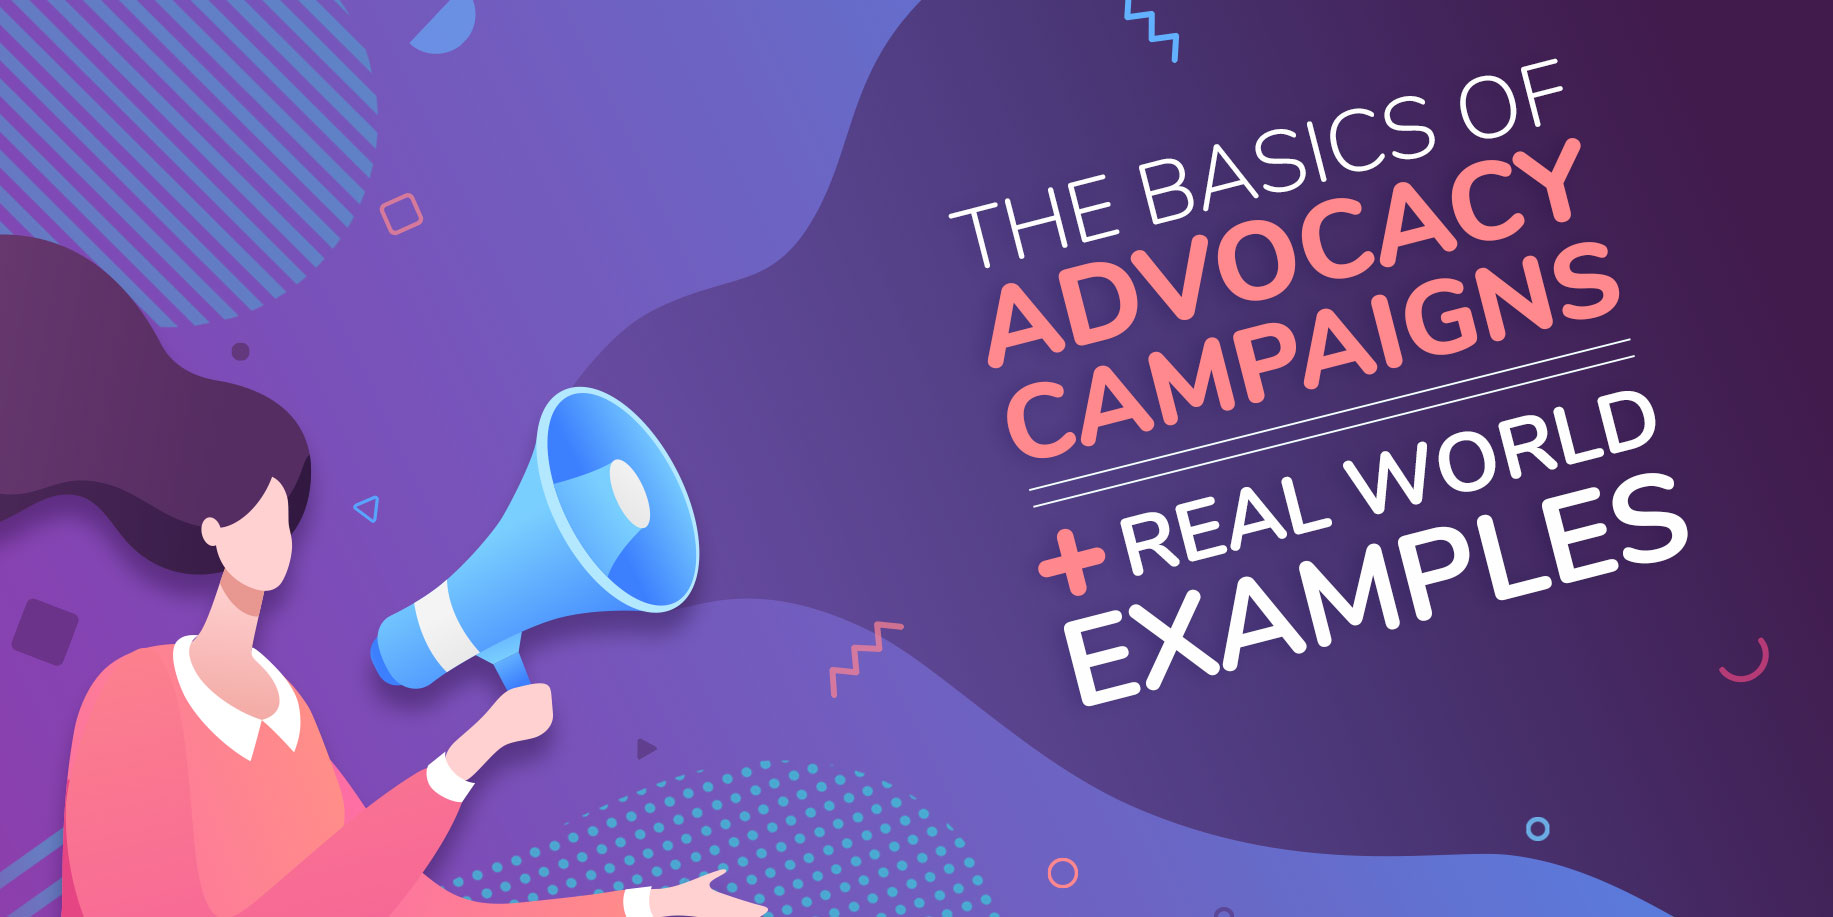 Advocacy | A Rundown of the Basics With Real-World Examples